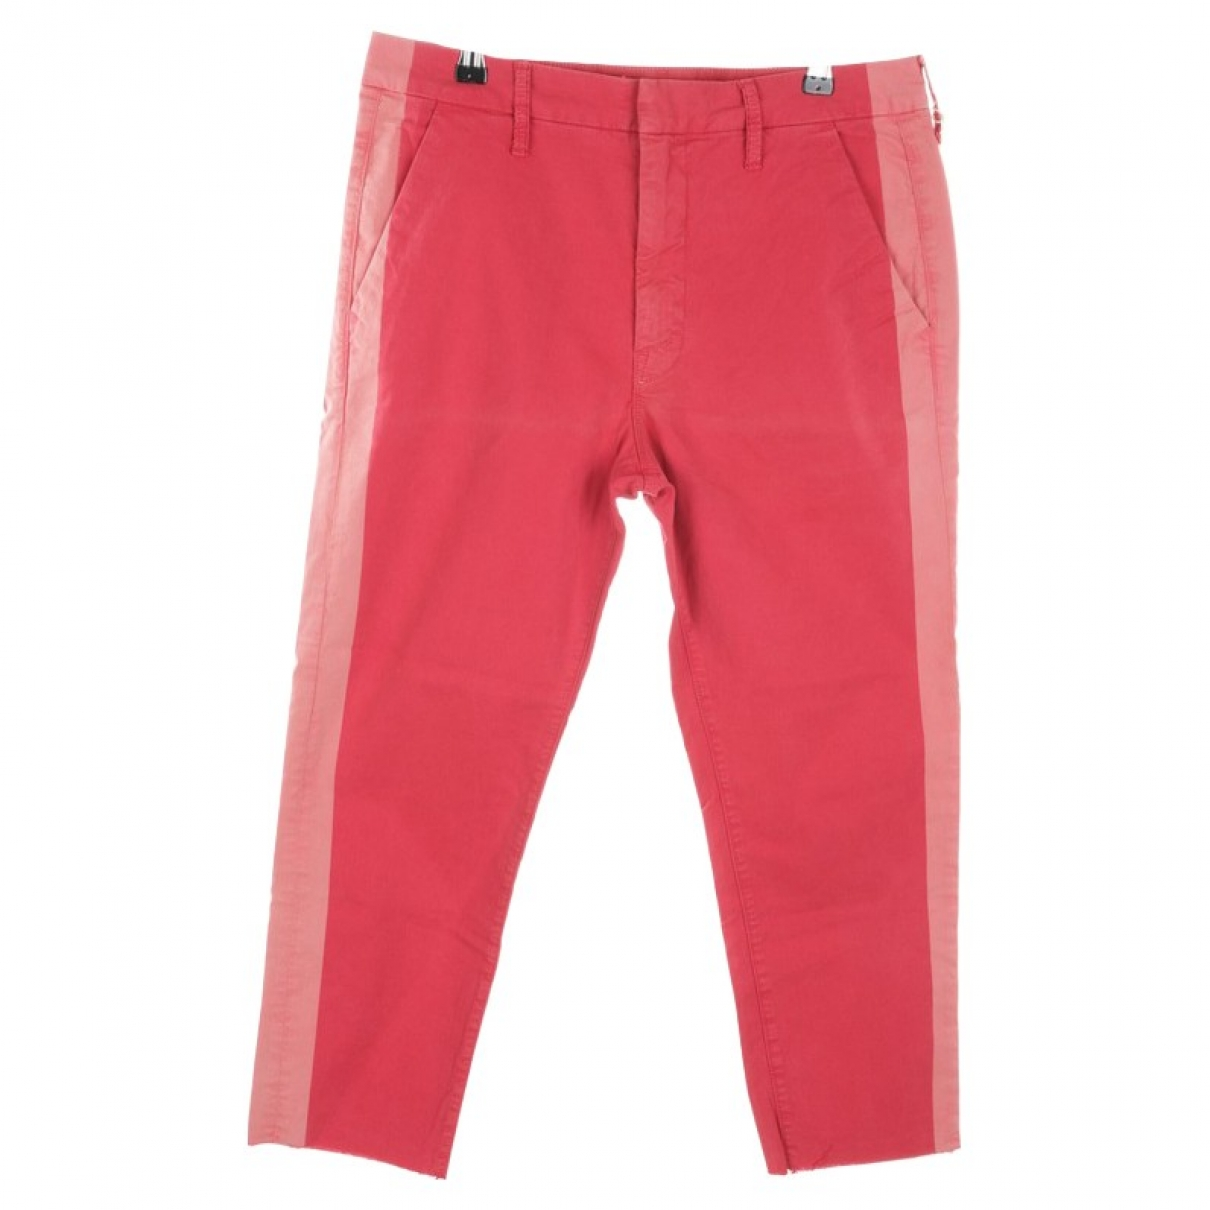 M\N Pink Cotton - elasthane Jeans for Women 29 US